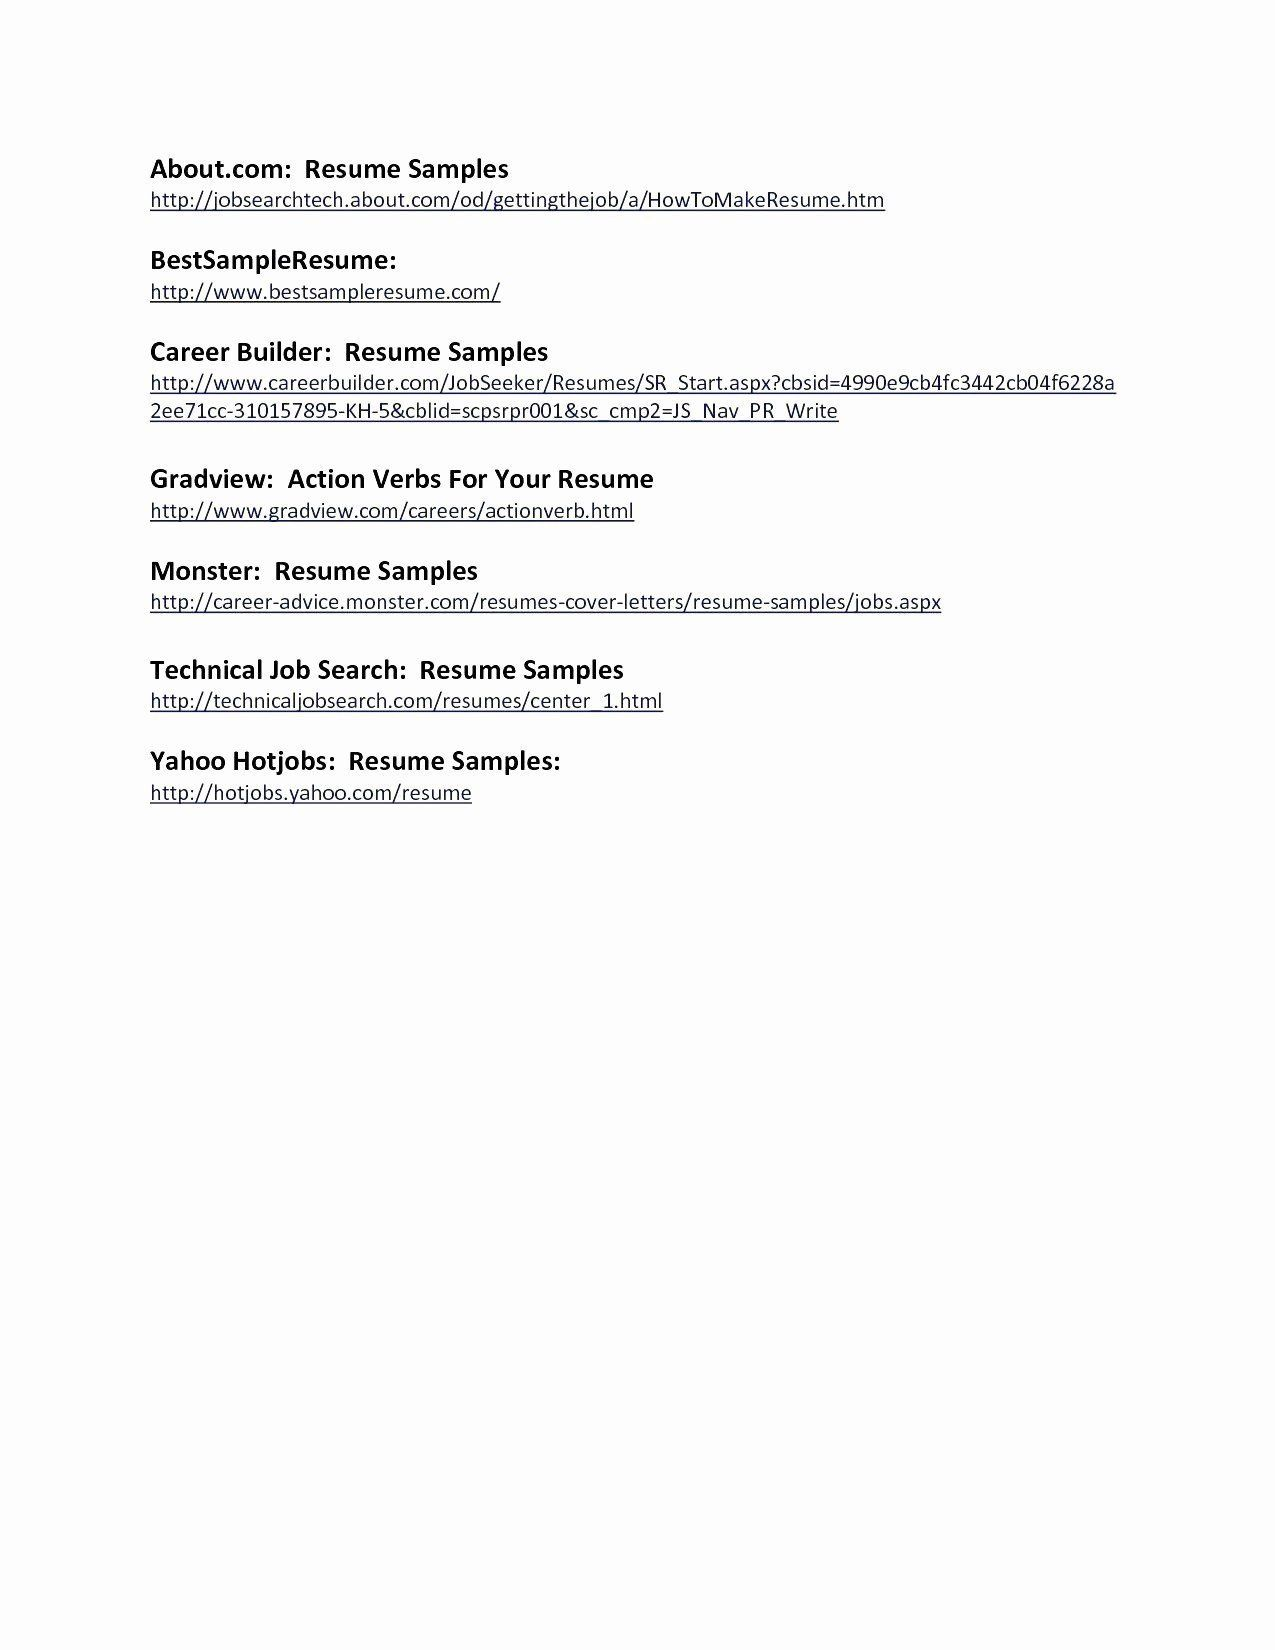 Product Manager Resume Examples Fresh Product Manager Sample Resume Professional 54 Fresh Product